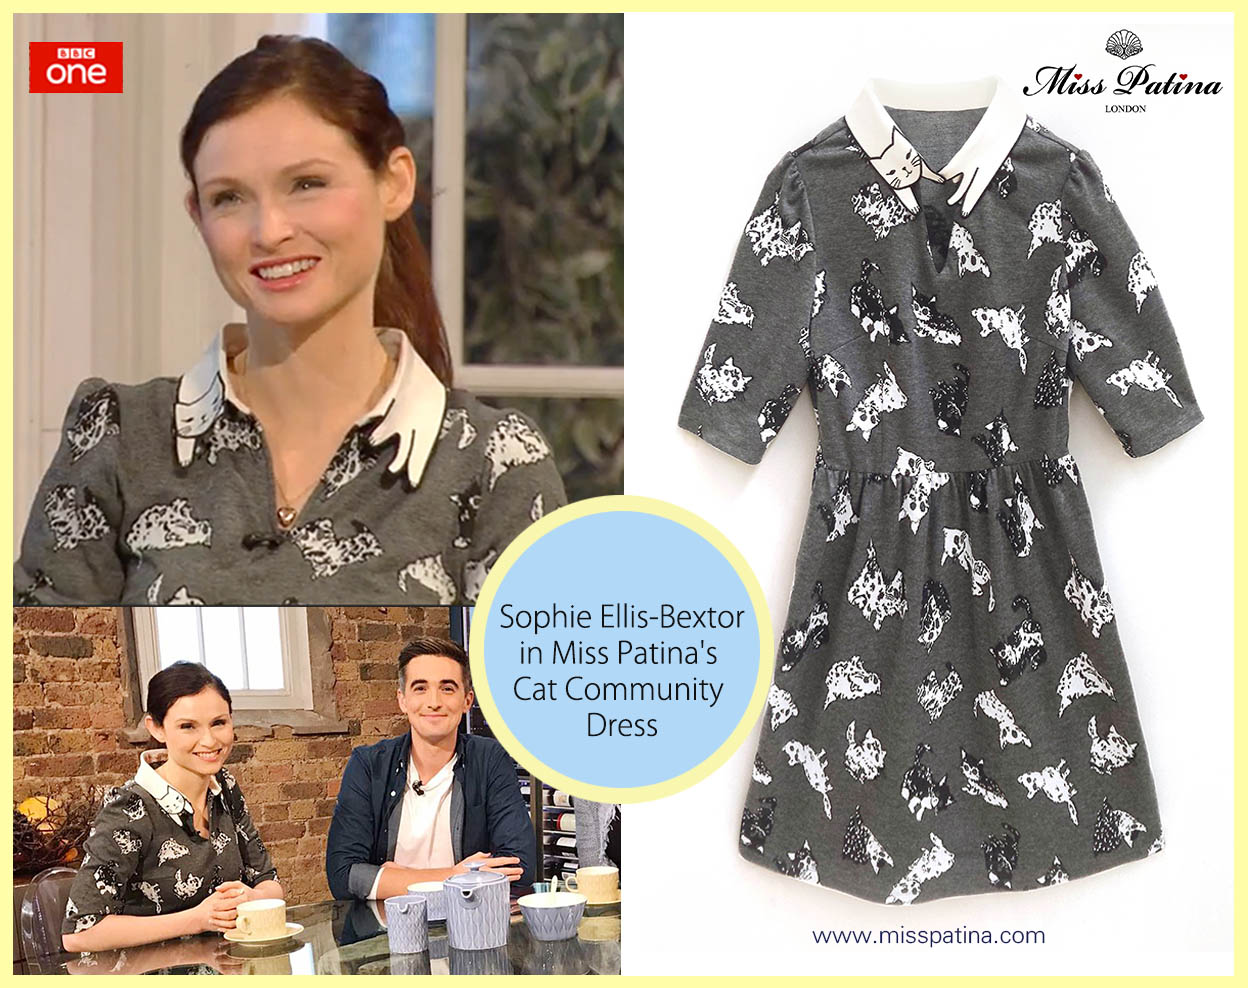 Spotted: Sophie Ellis-Bextor in Miss Patina!